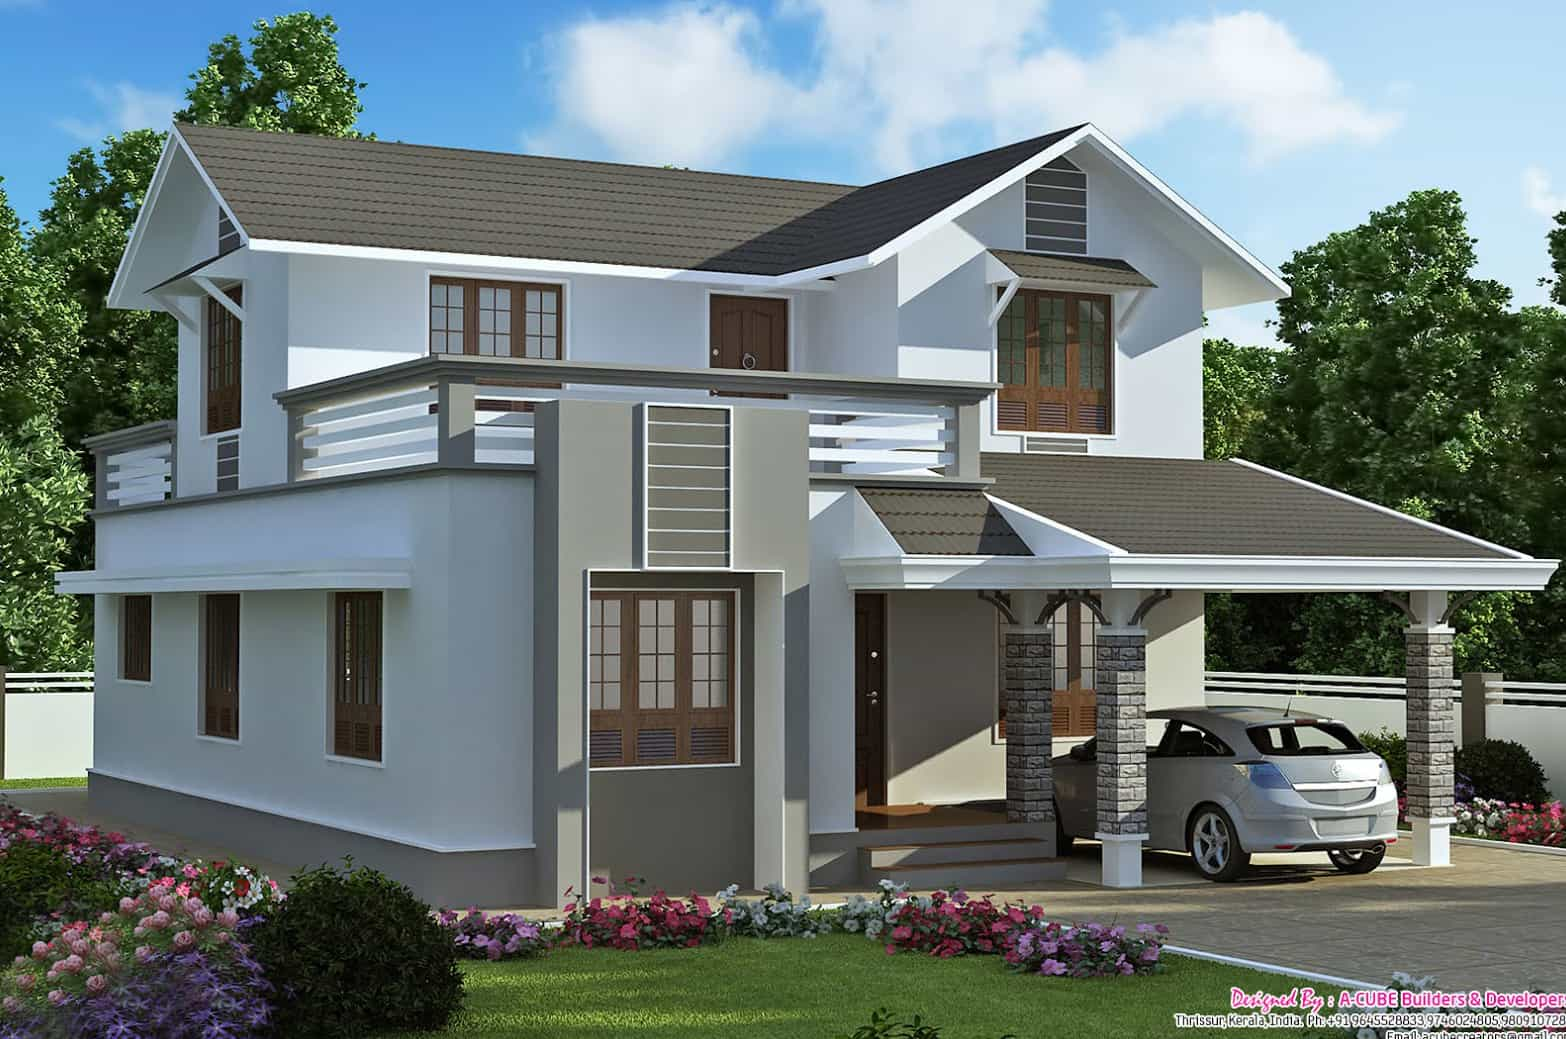 two storey house interior design philippines with Two Storey Kerala House Designs on  additionally 3 moreover Home Exterior Design House Interior as well Single storey bungalow house design malaysia together with Brand New 2 Storey House Sale Catalunan Pequeno.